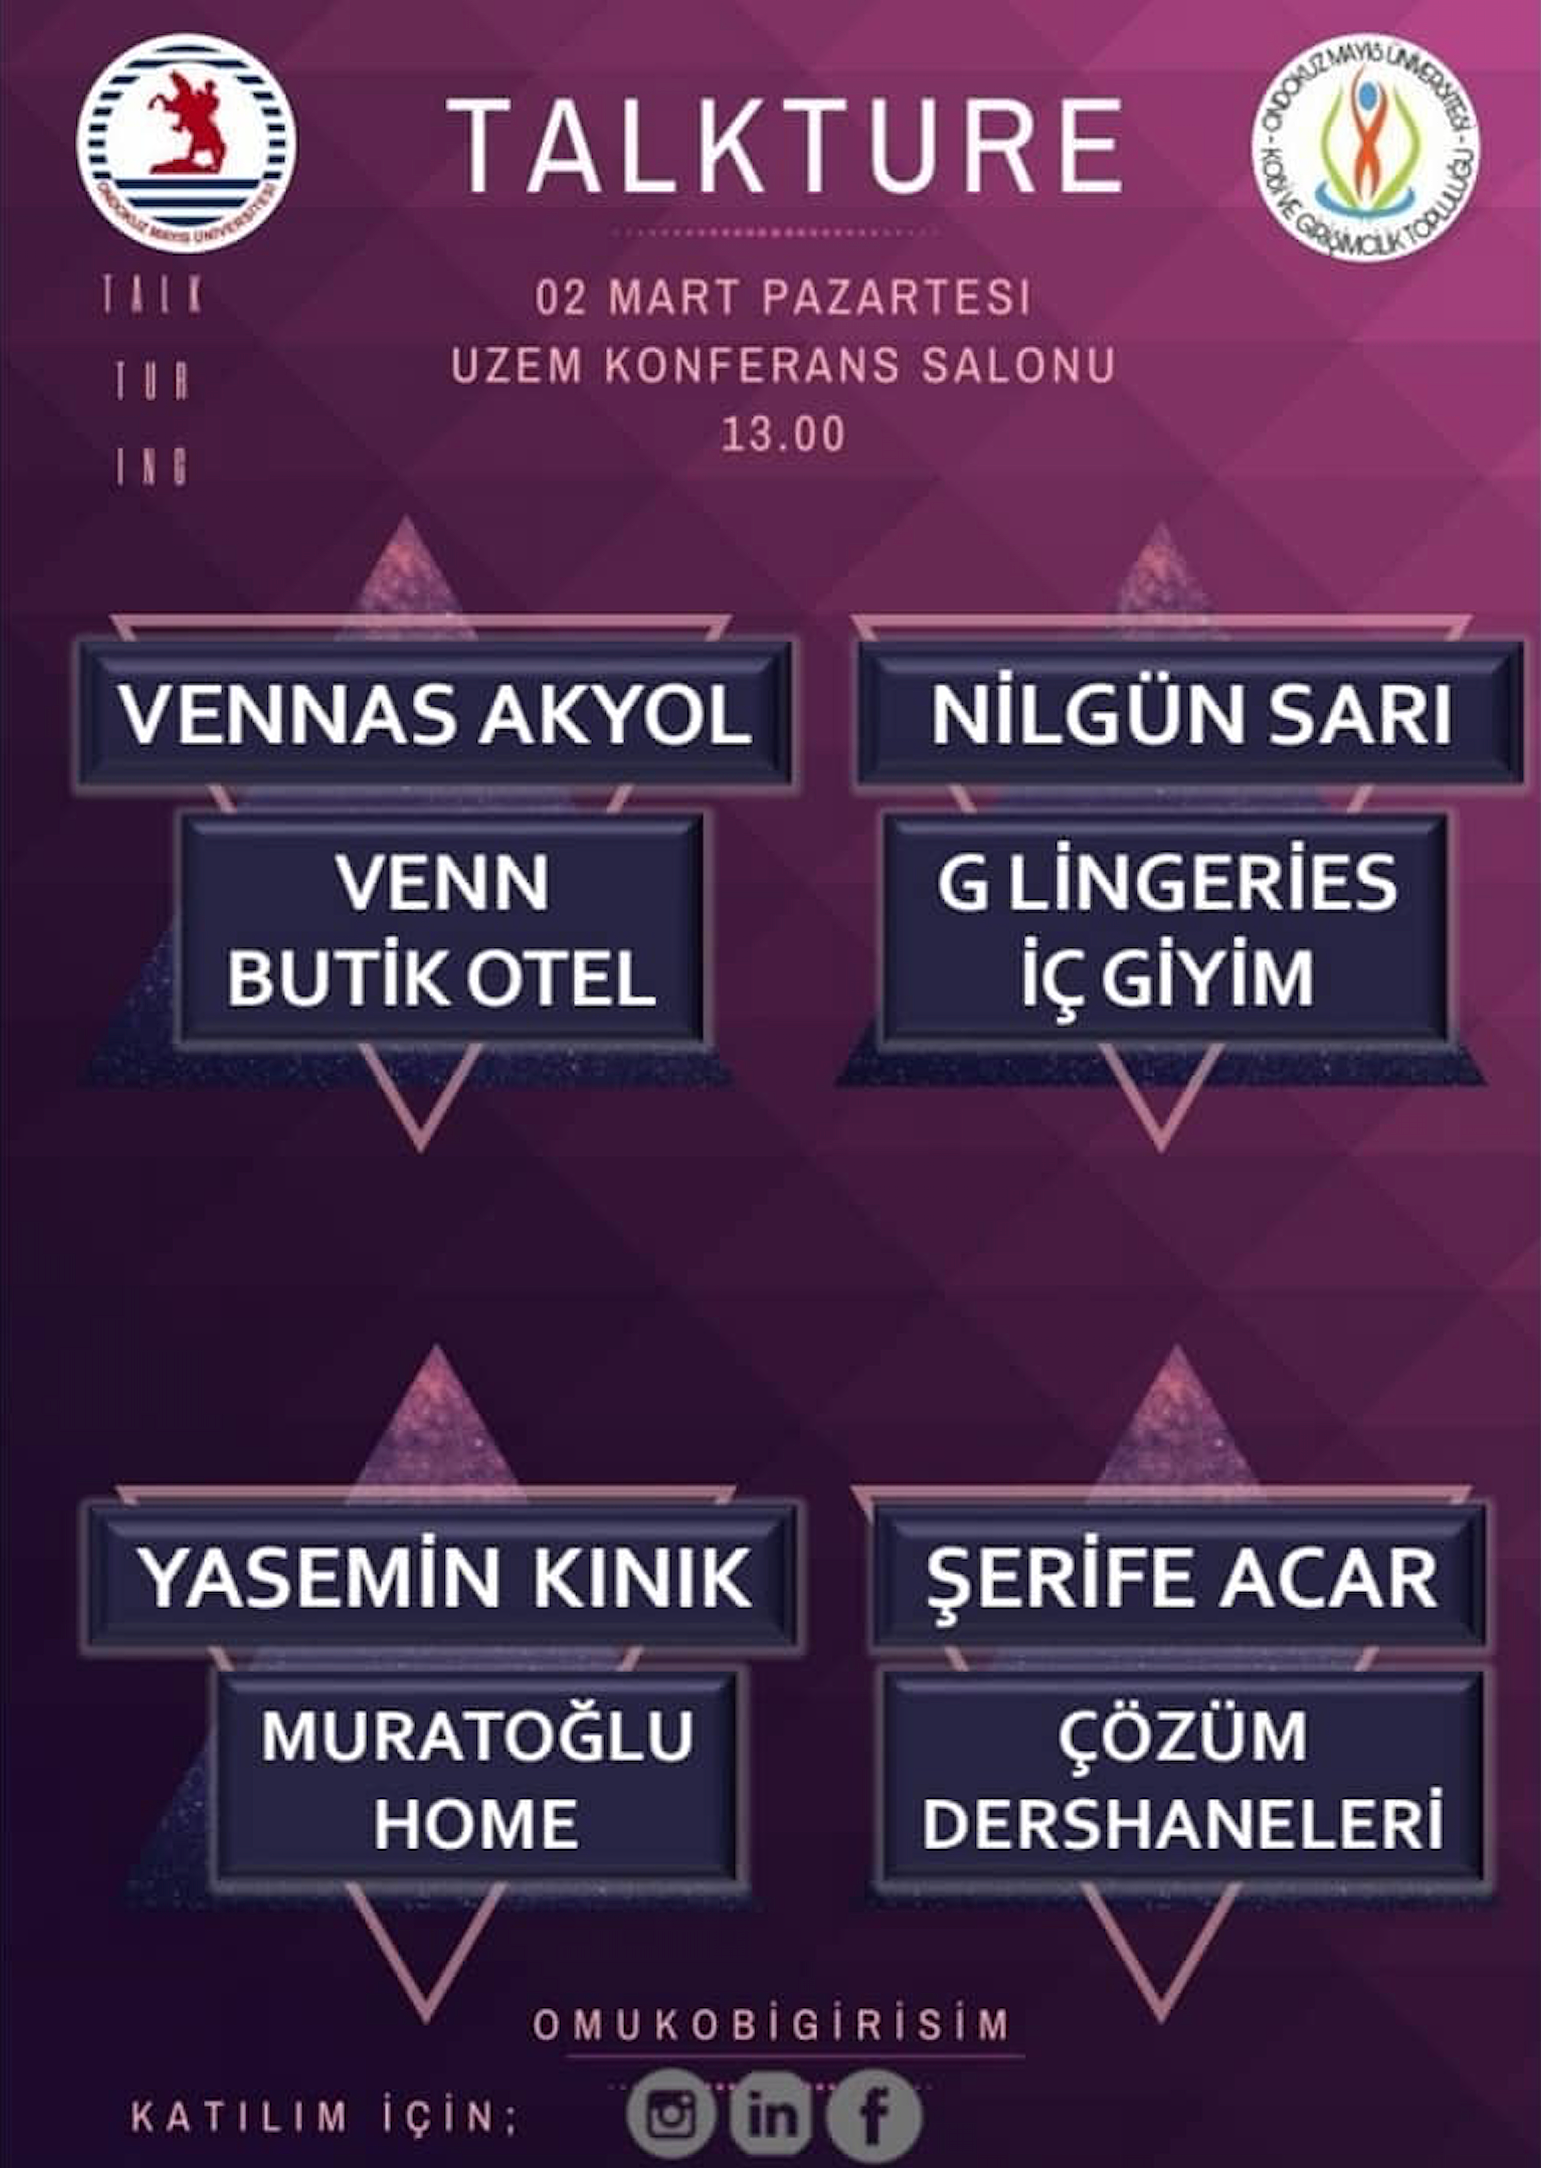 http://www.omu.edu.tr/sites/default/files/kobi_ve_girisimcilik_toplulugu_1.png